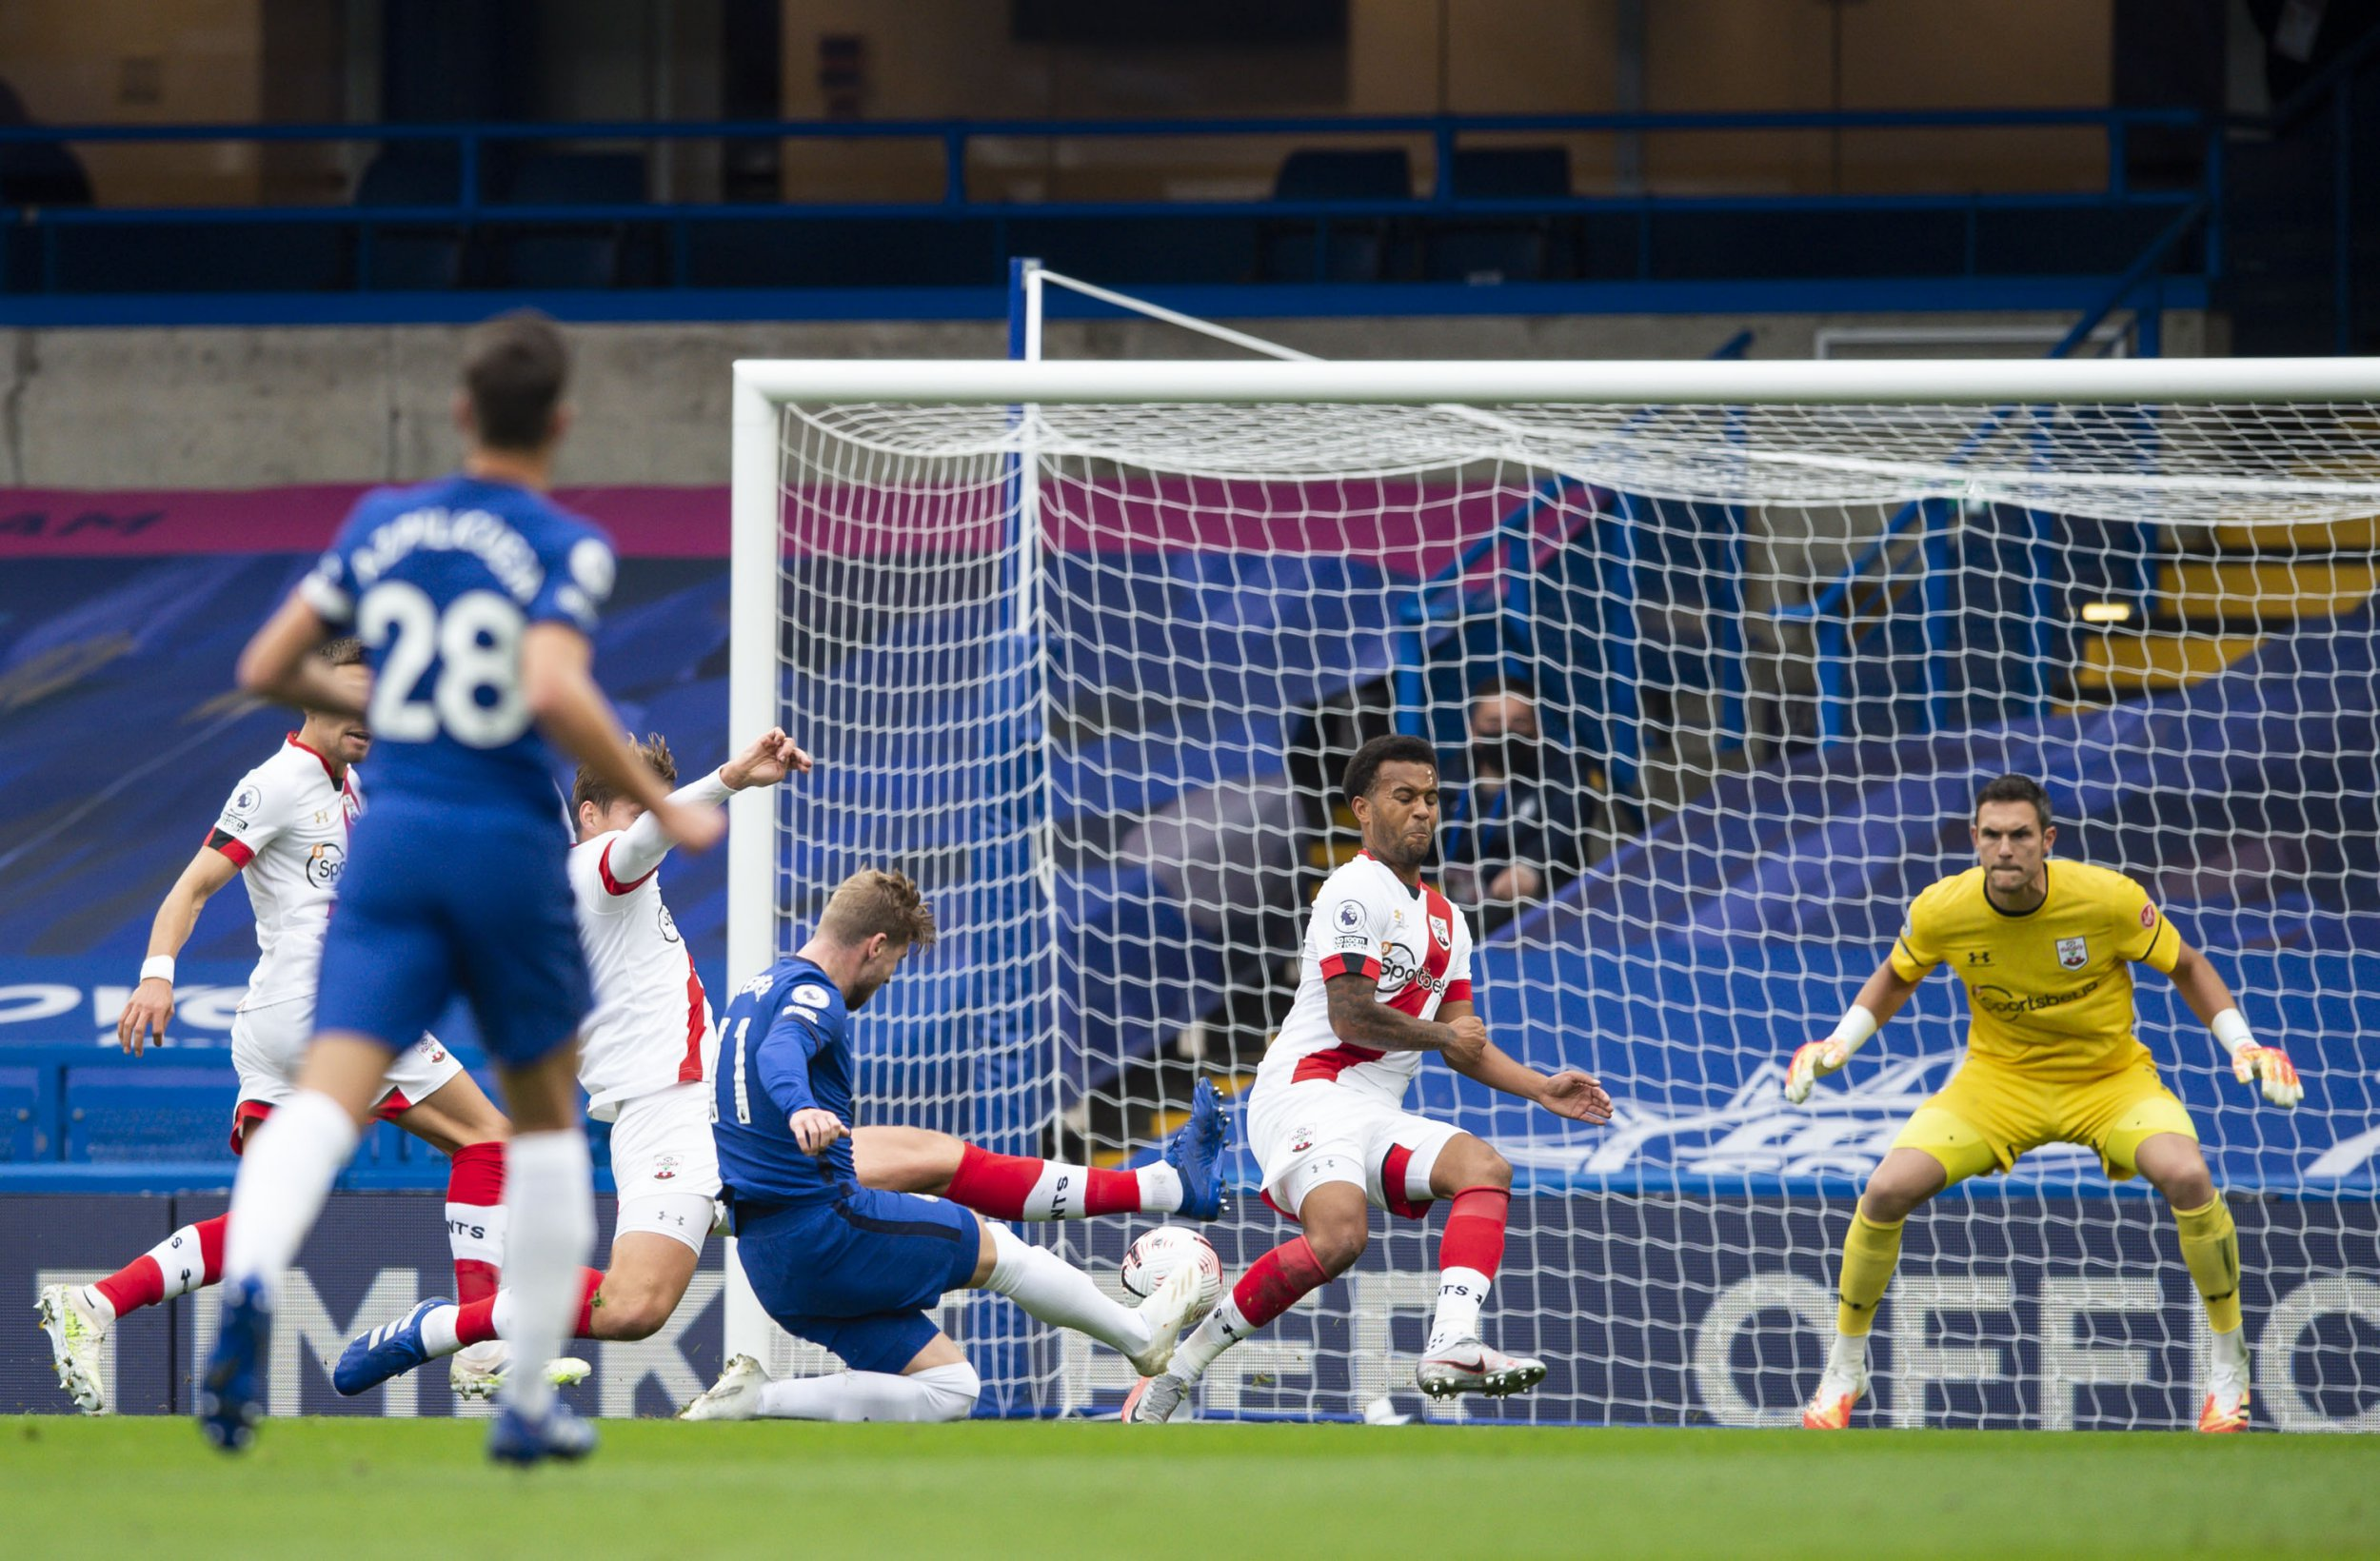 Chelsea 3 Southampton 3: Kepa howler and injury-time goal see Blues throw away two-goal lead